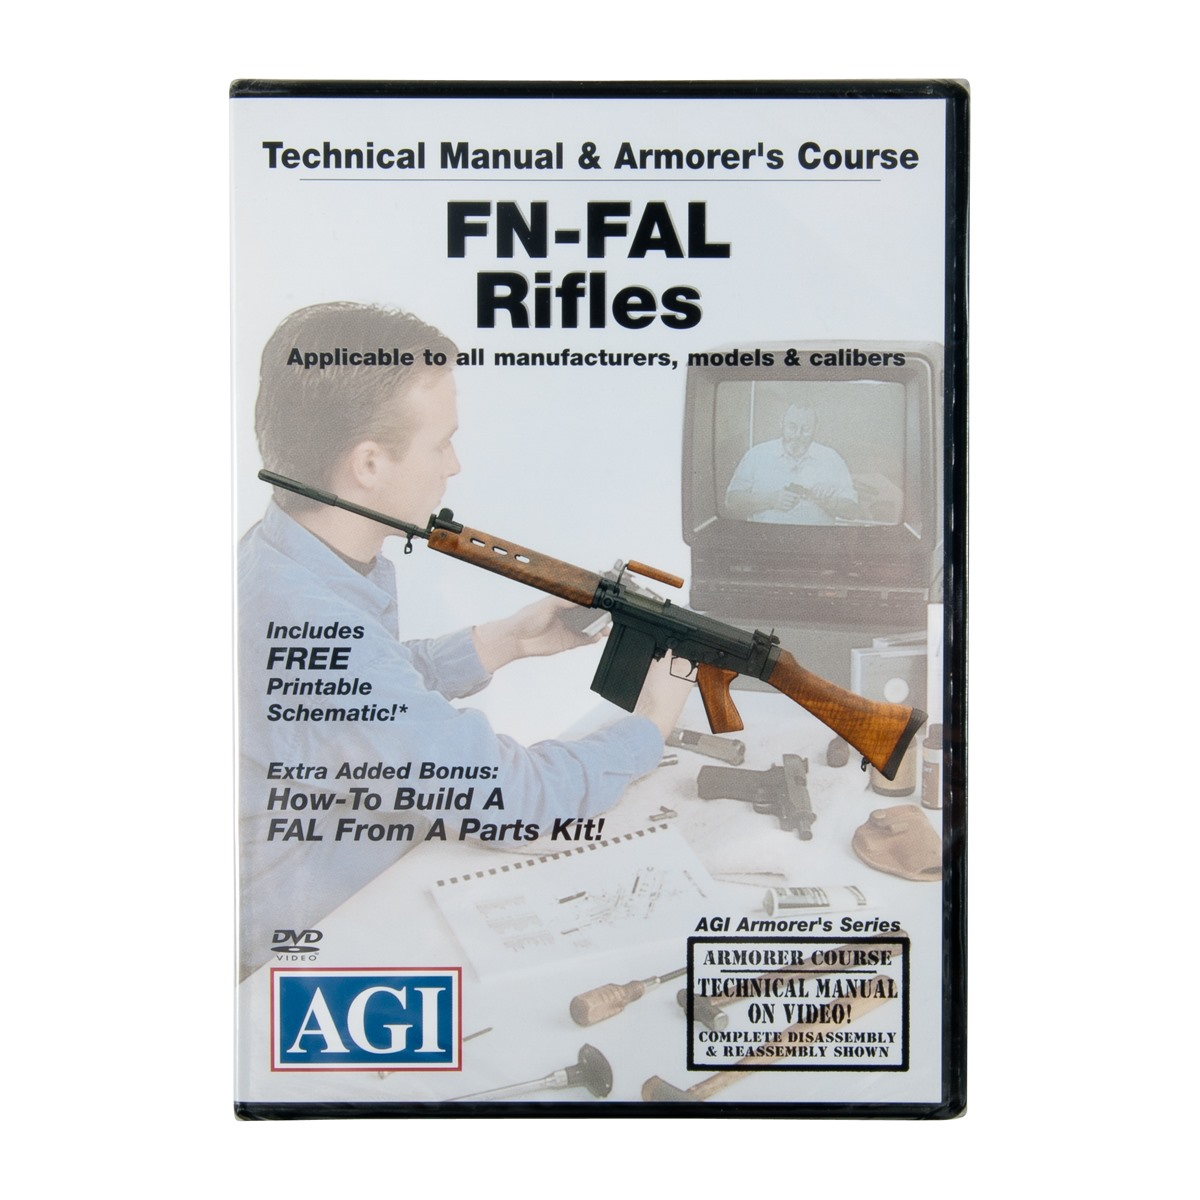 Agi Fn Fal Rifles Technical Manual And Armorers Course Dvd Brownells Spray Tool Work Bench Part Diagram Mosin Nagant Rifle Gun Mat Ebay Back